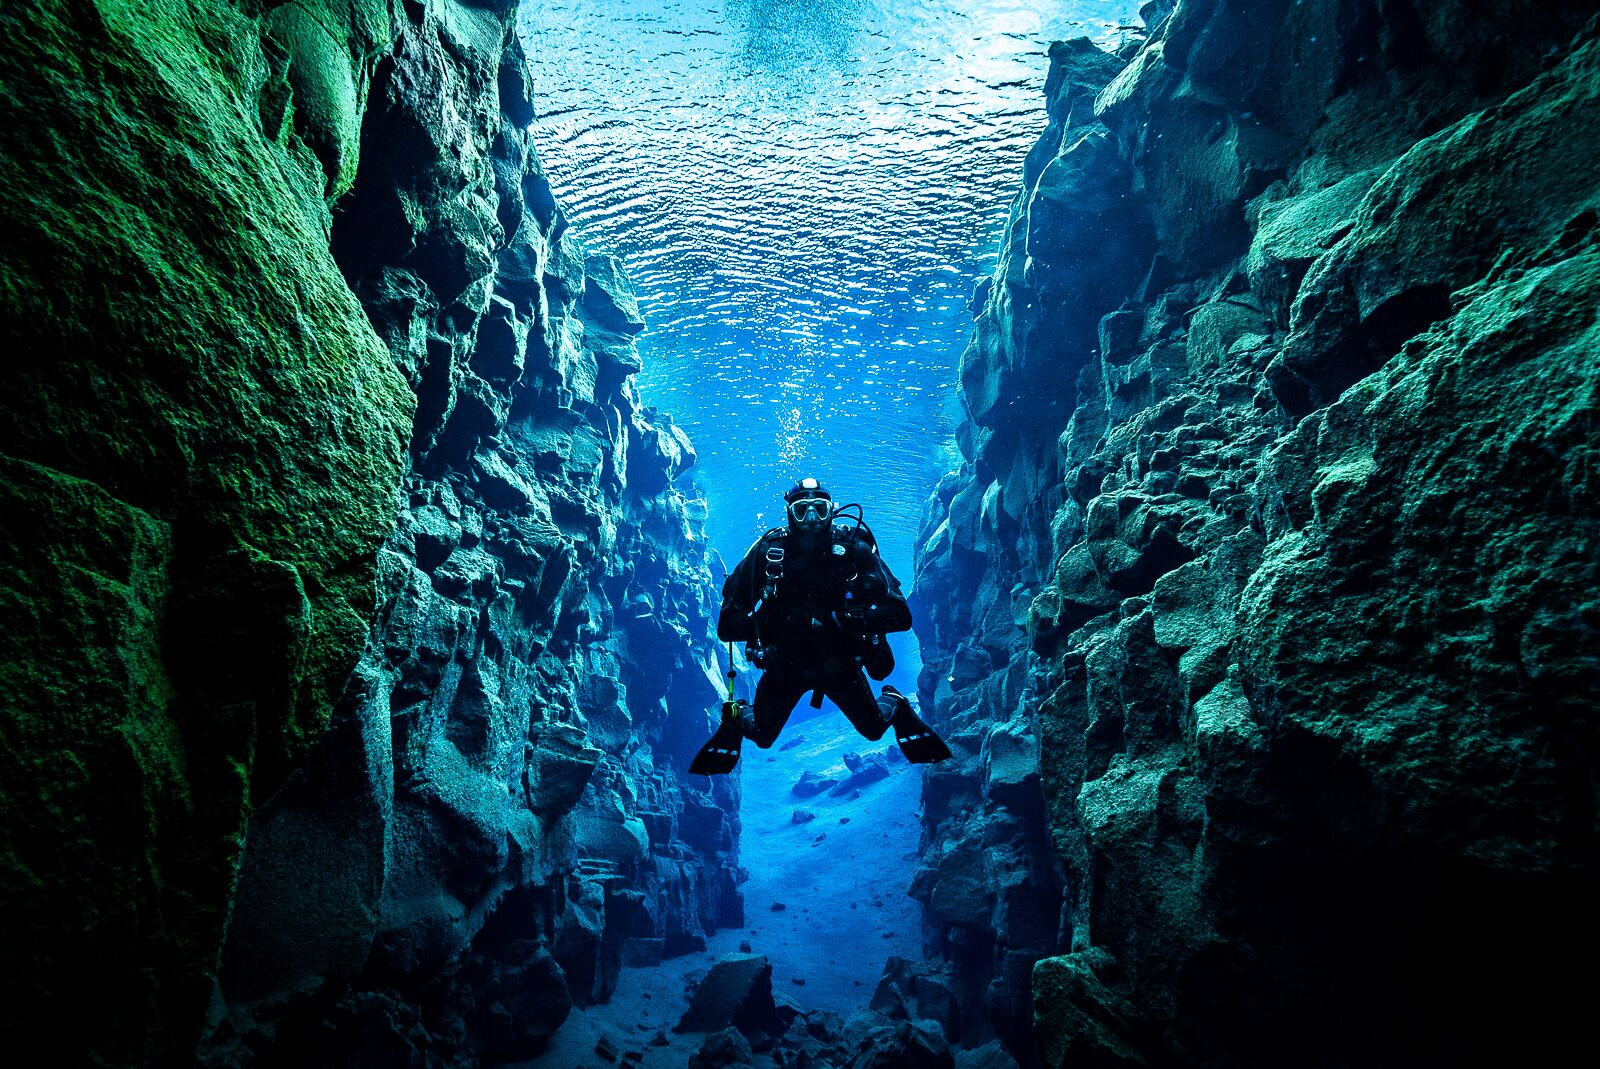 A diver in Silfra fissure in Iceland.